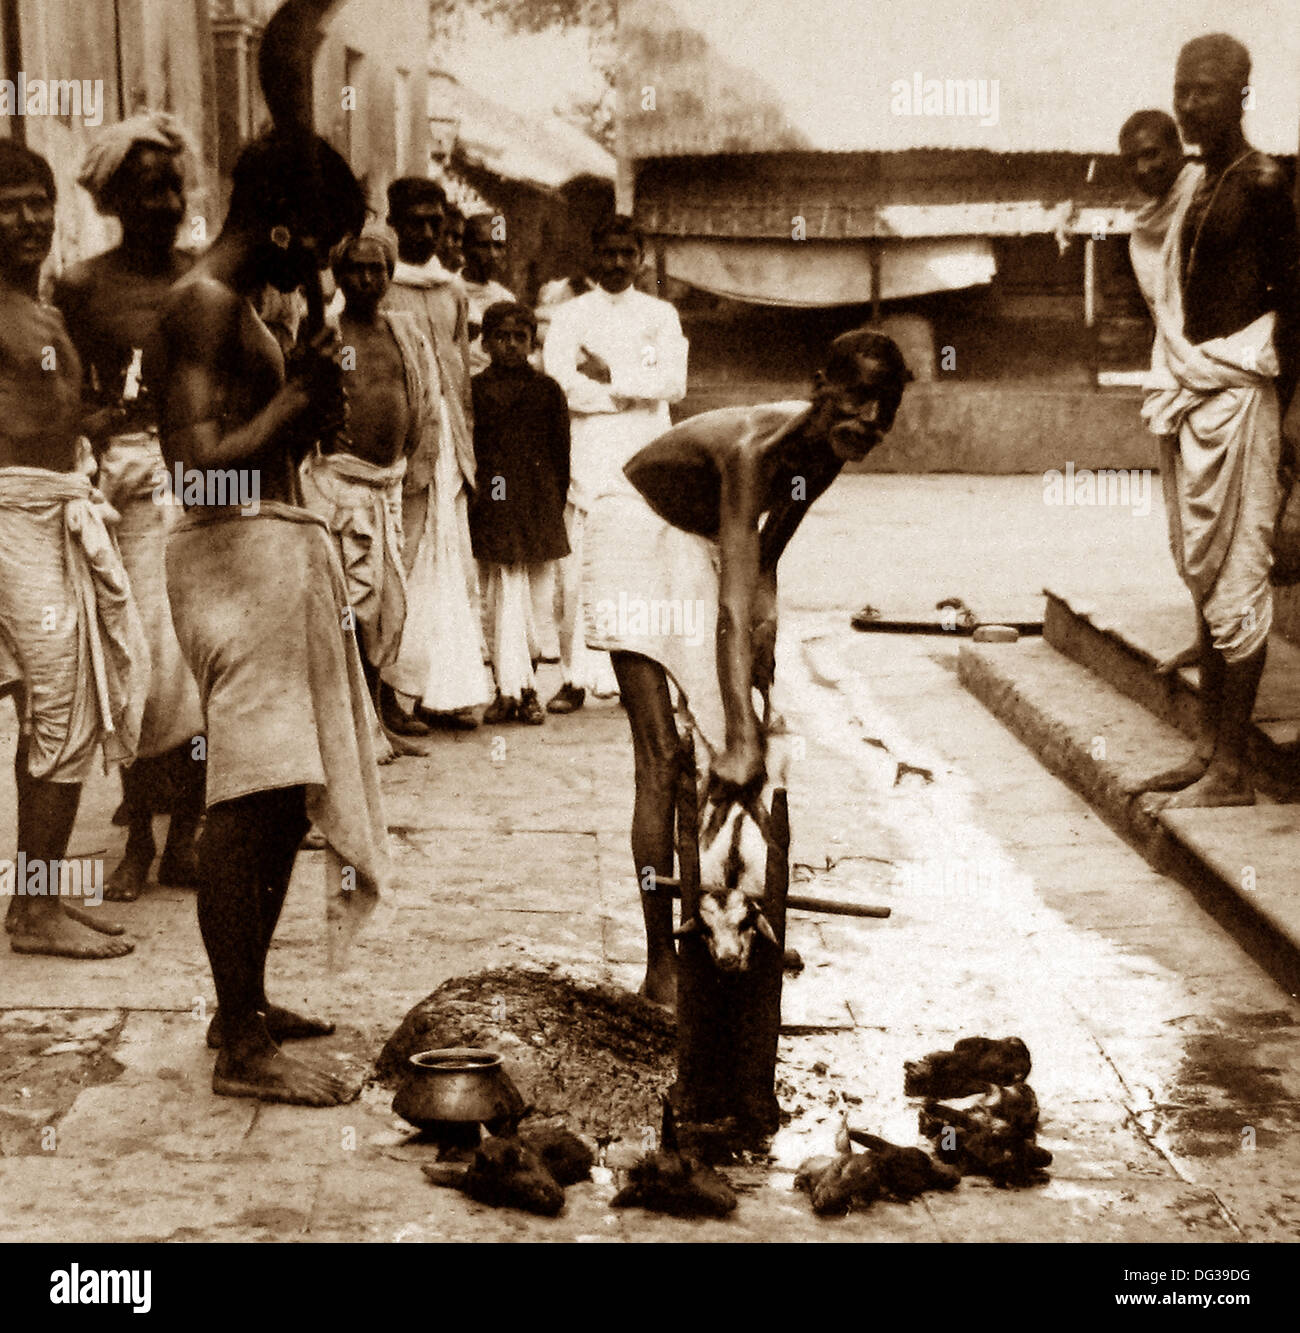 India - Calcutta - Sacrificing a goat early 1900s - Stock Image